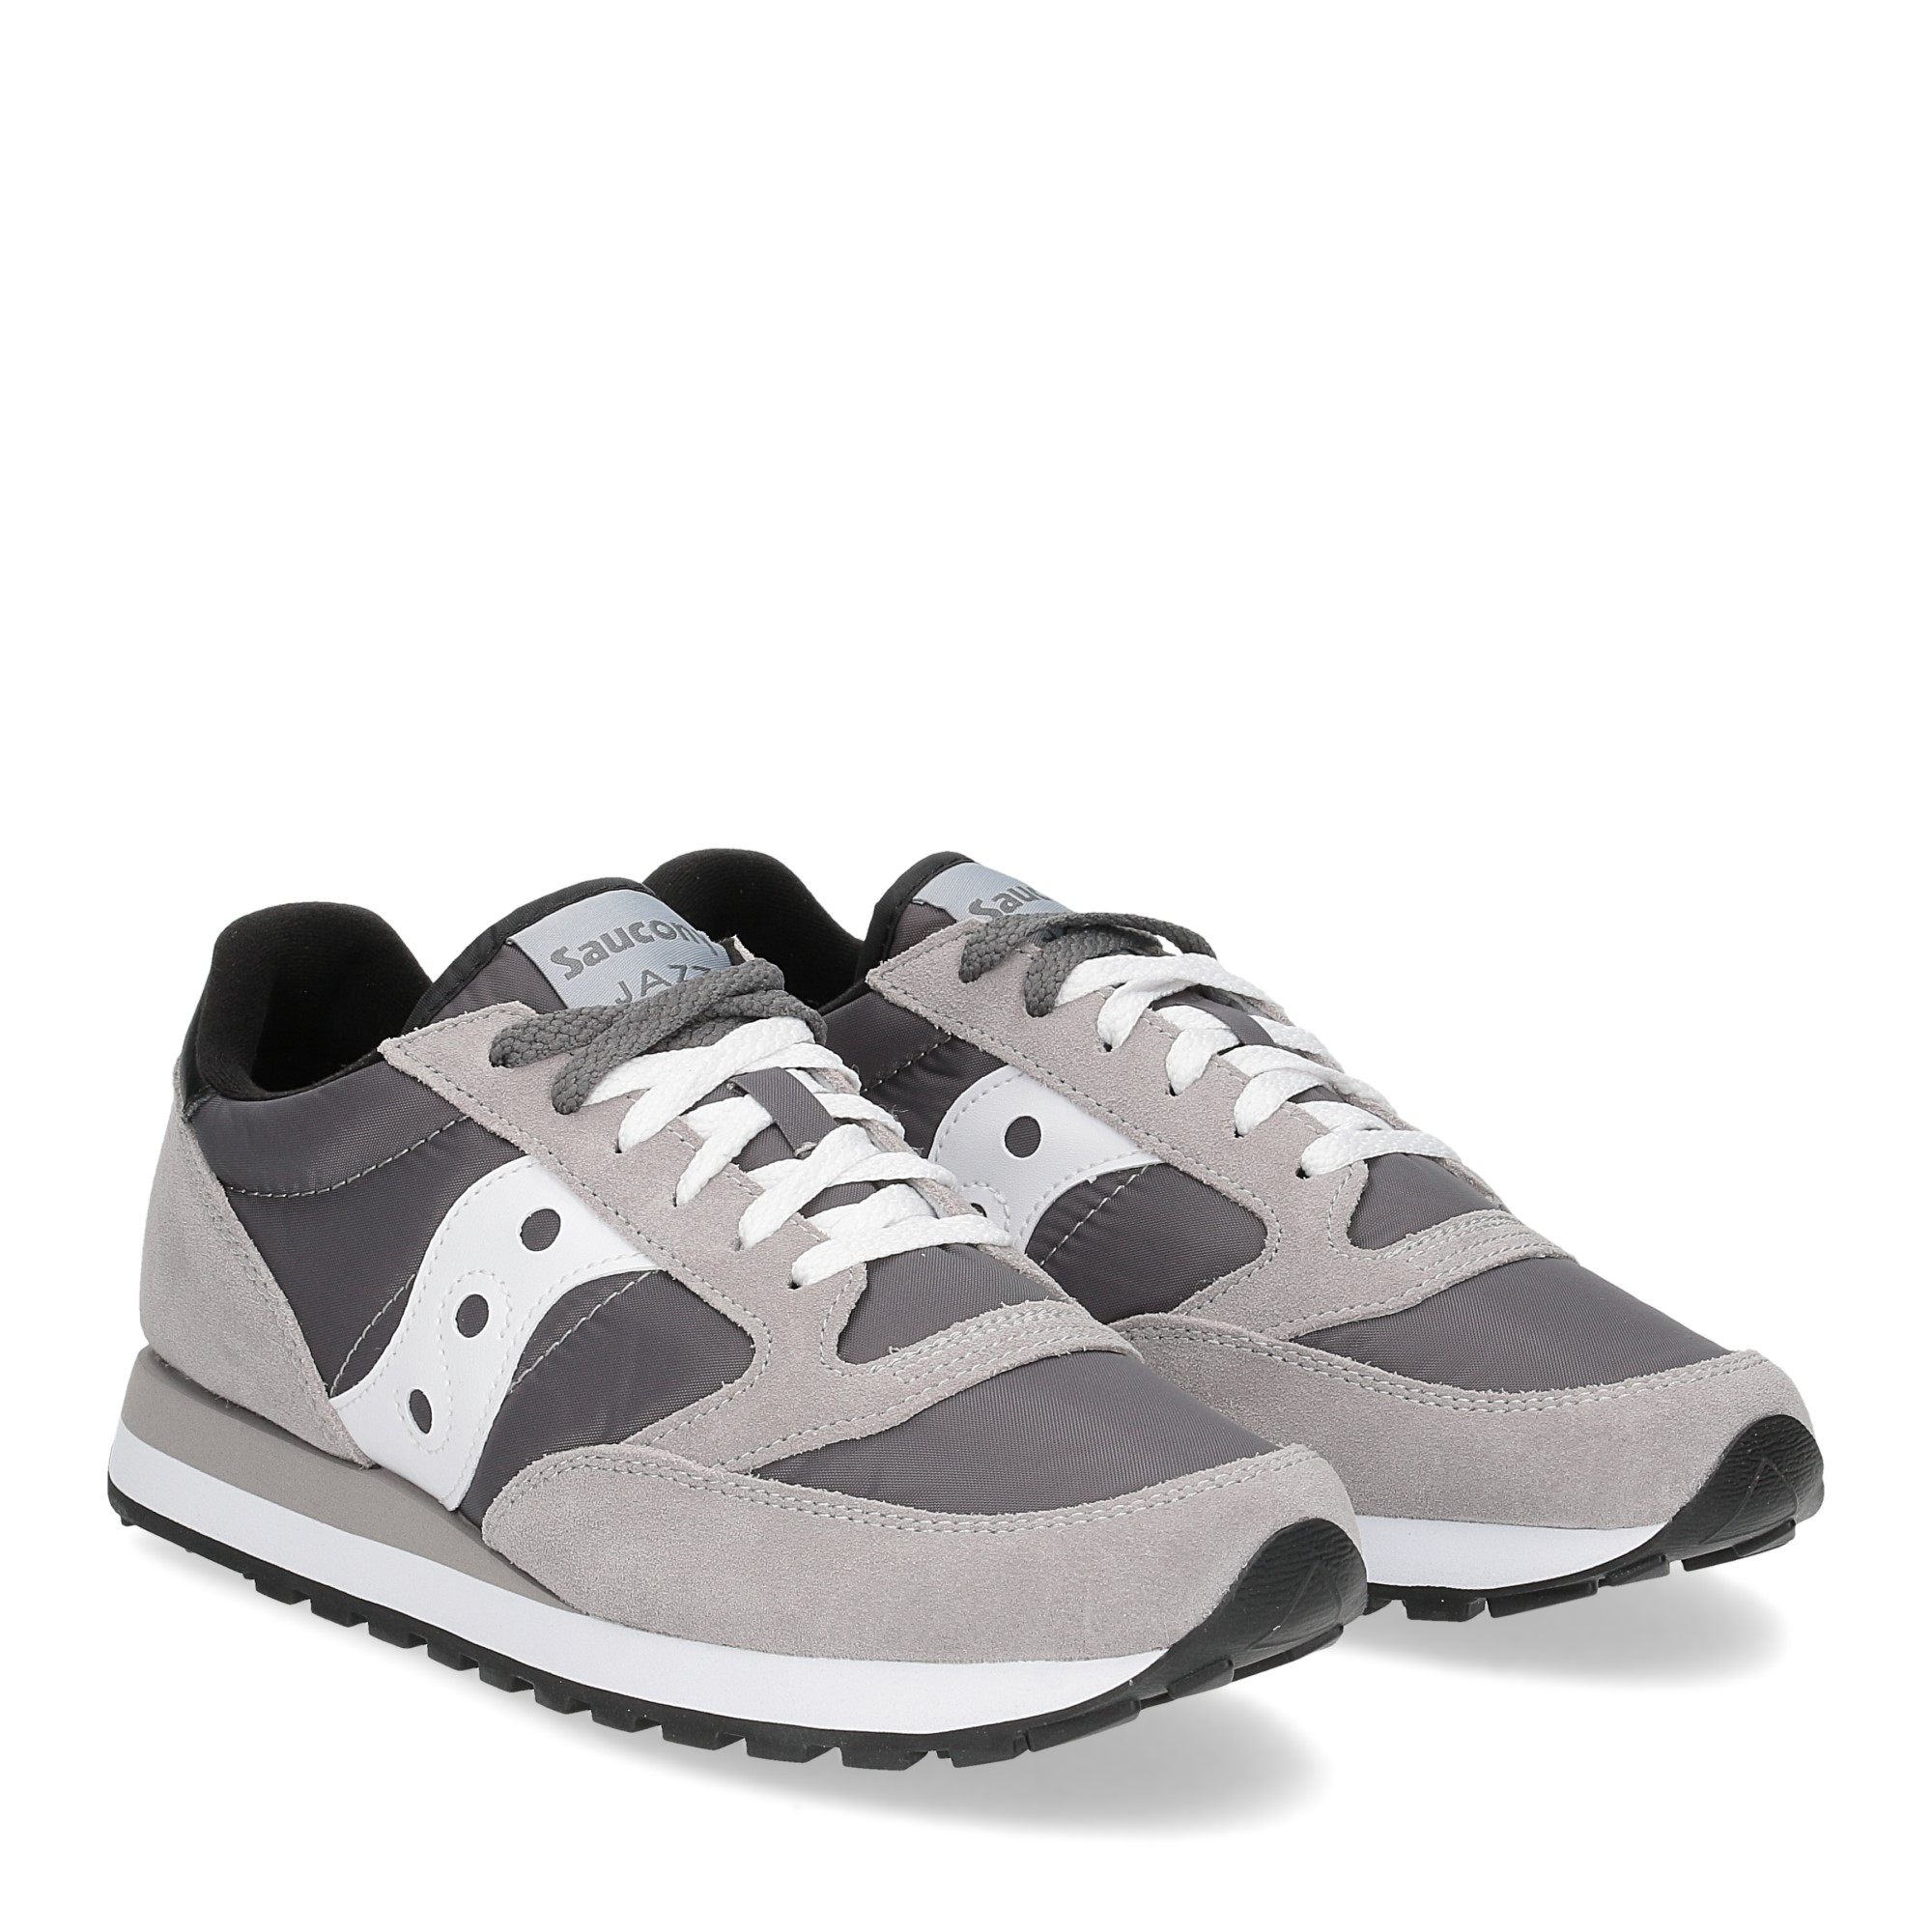 Saucony Jazz Original dark grey white